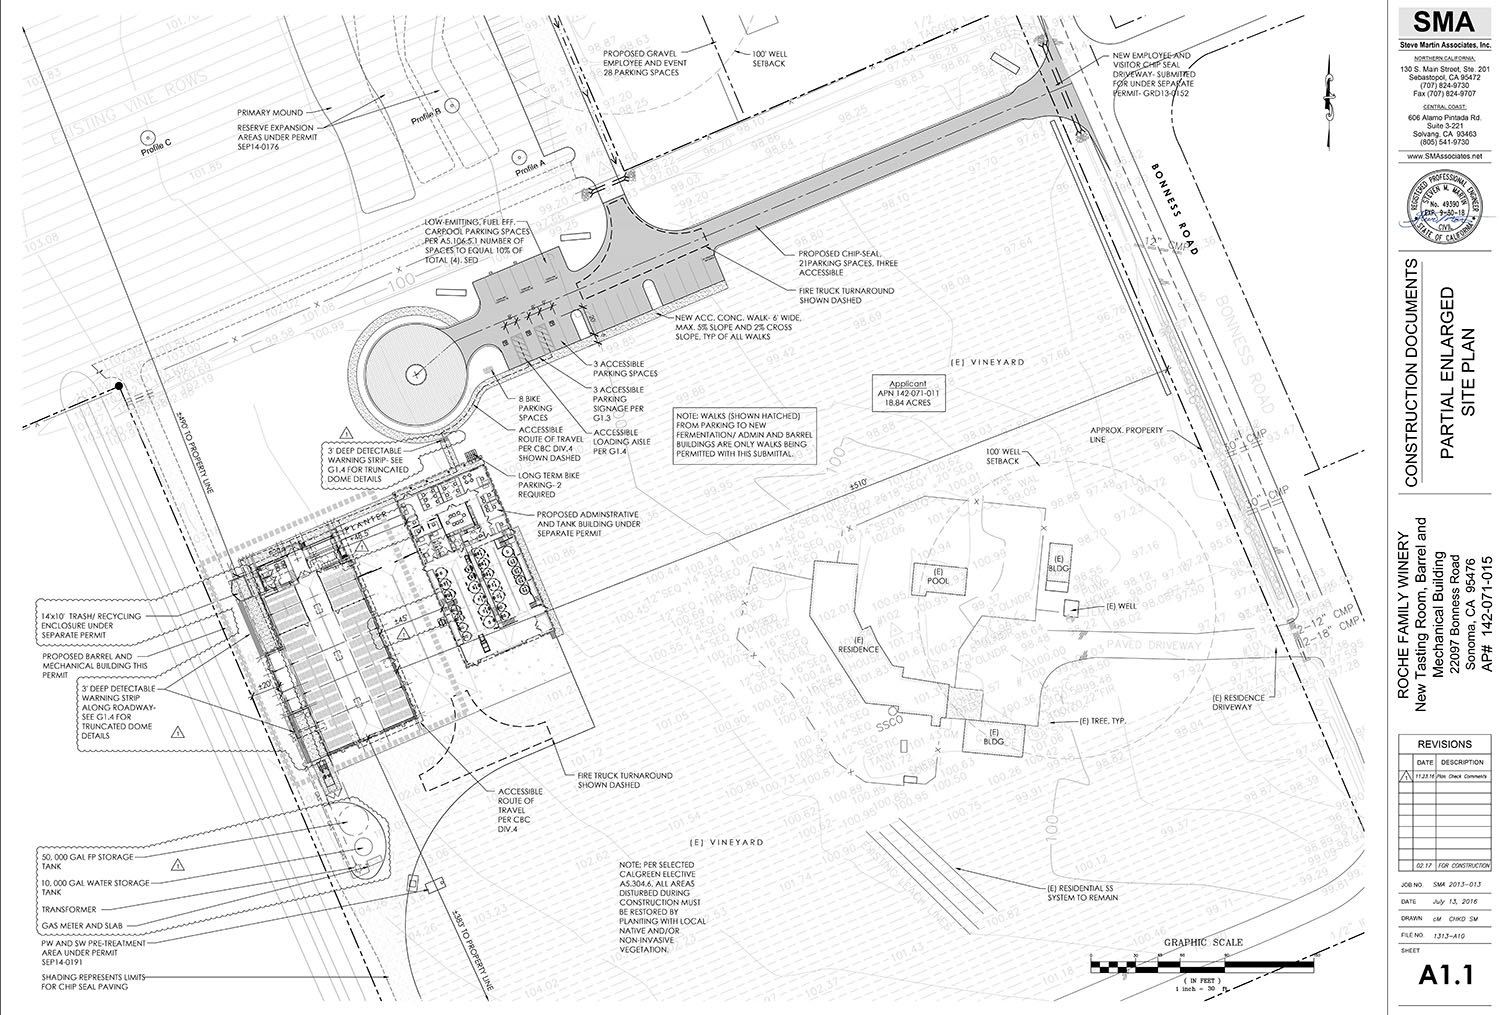 New Winery site plan